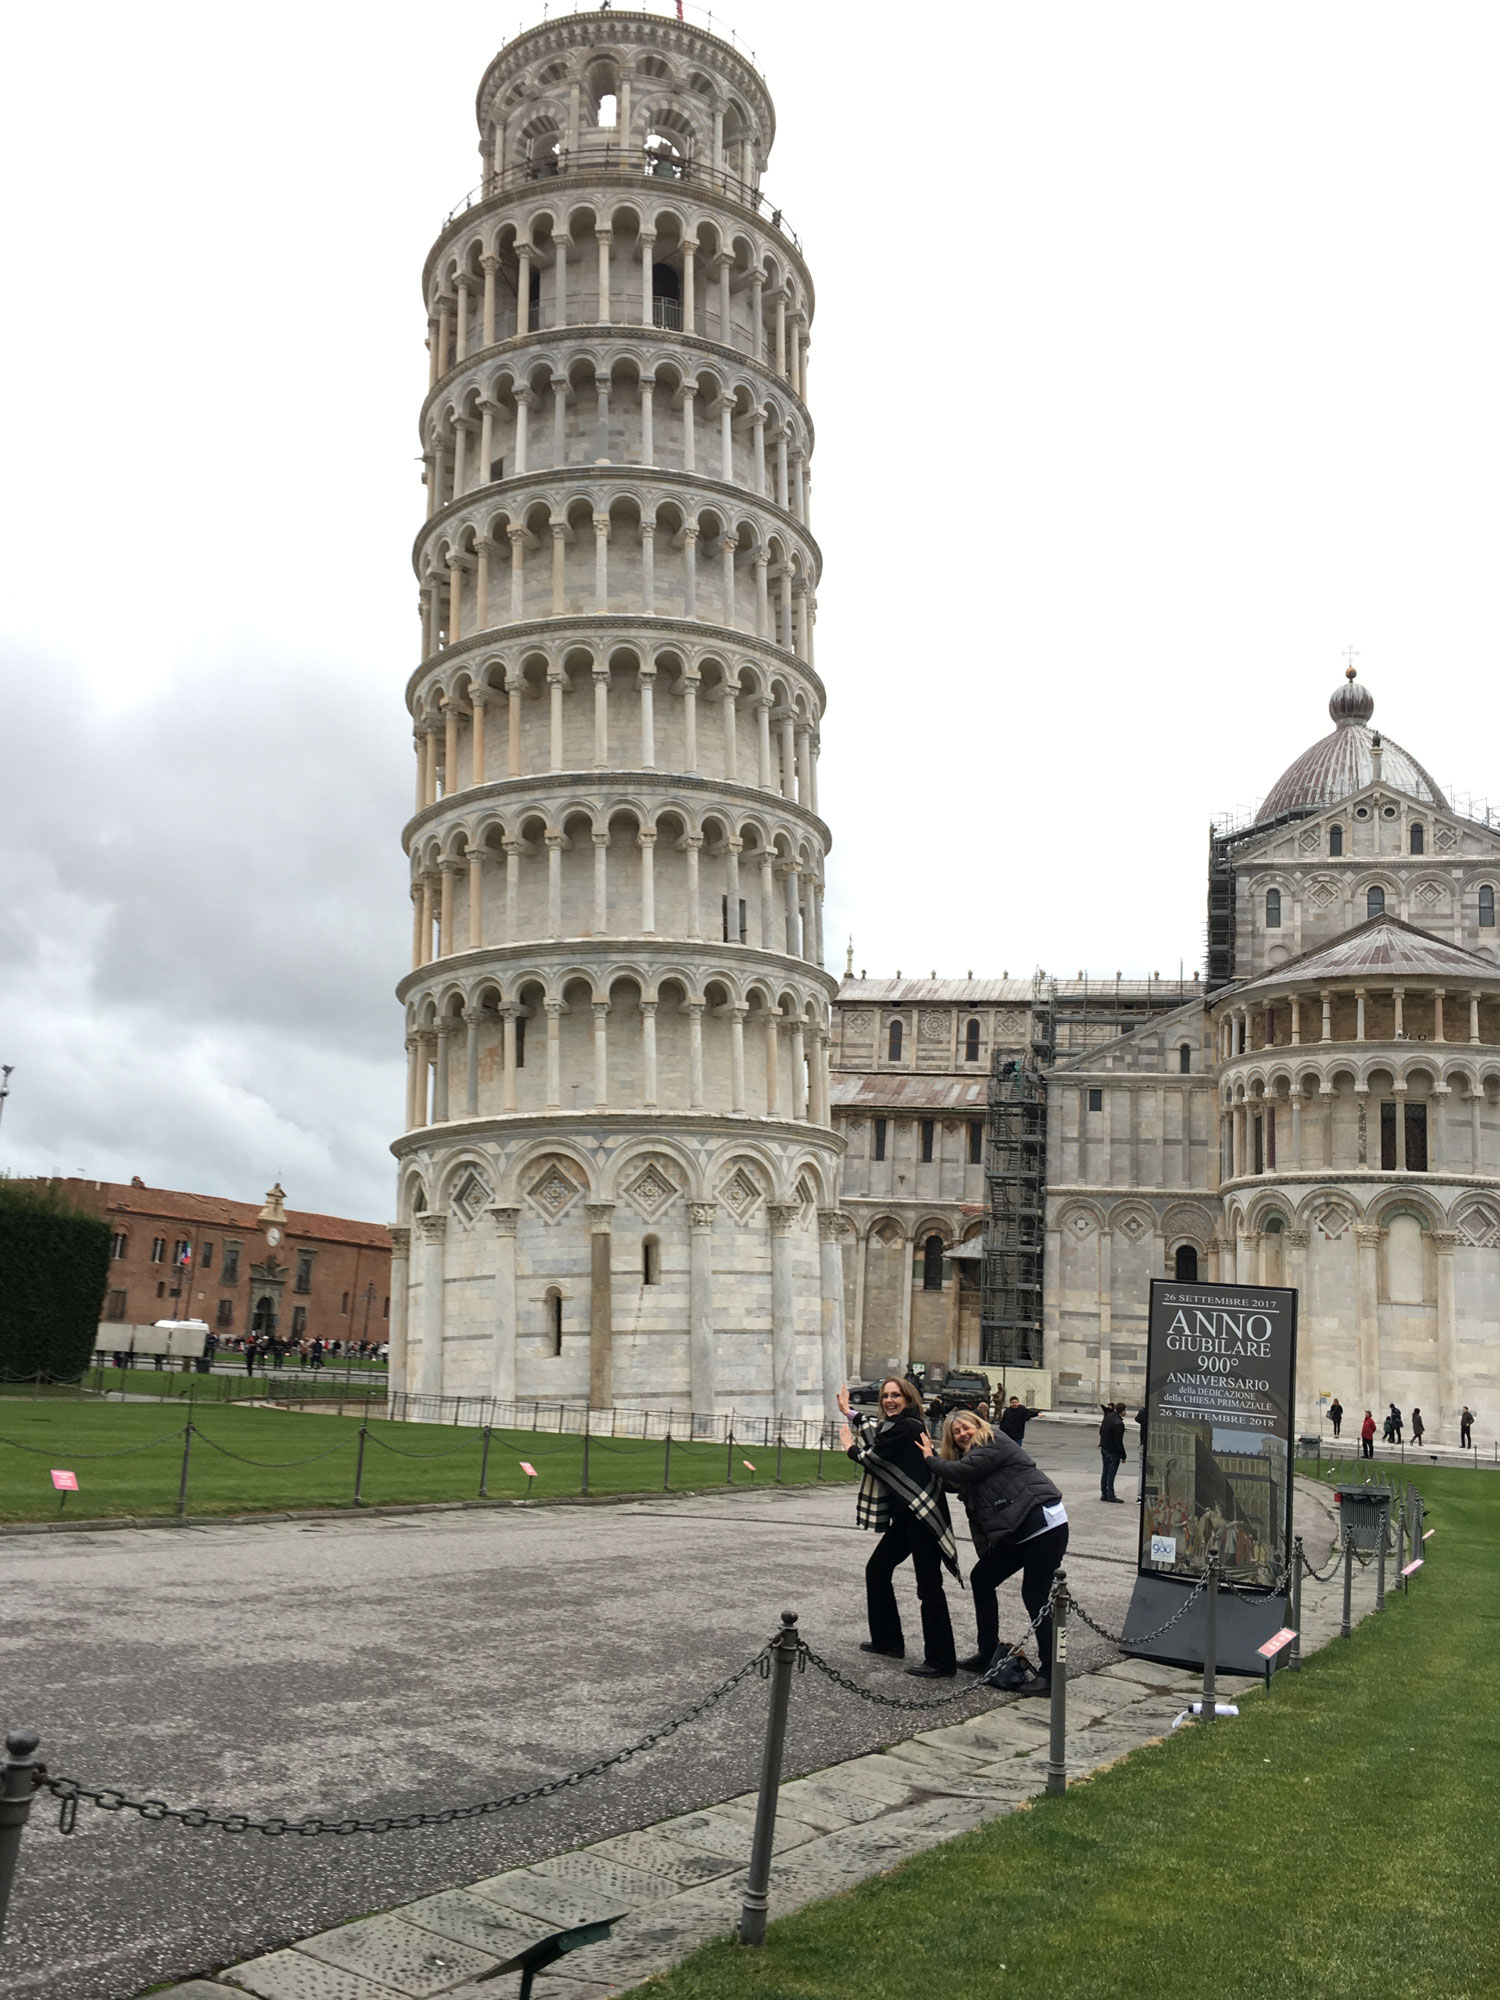 Holding up the Tower of Pisa!